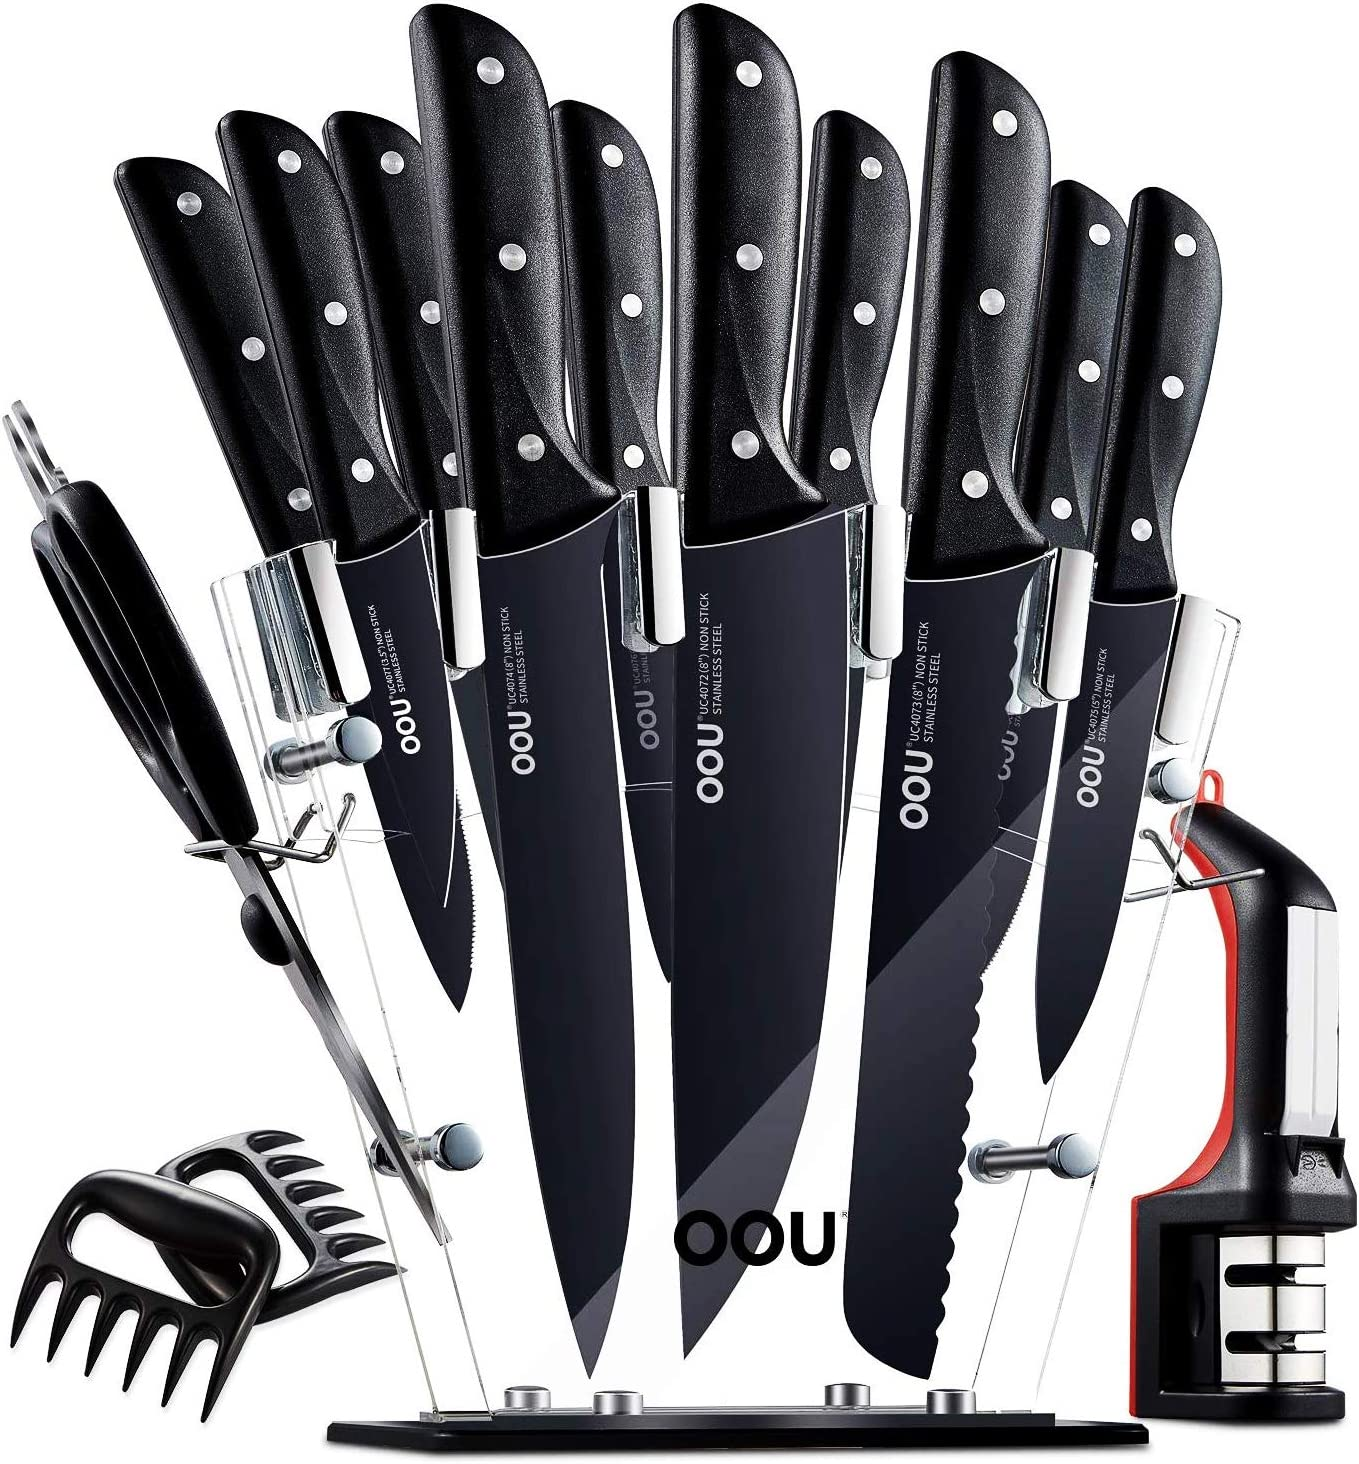 Knife Set - 15 Kitchen Knife Set with Block, Stainless Steel Kitchen Knives Ultra Sharp - Full Tang with Triple Rivets, Clear Acrylic Stand, BO Oxidation Anti-rusting, Knife Sharpener & Meat Claws